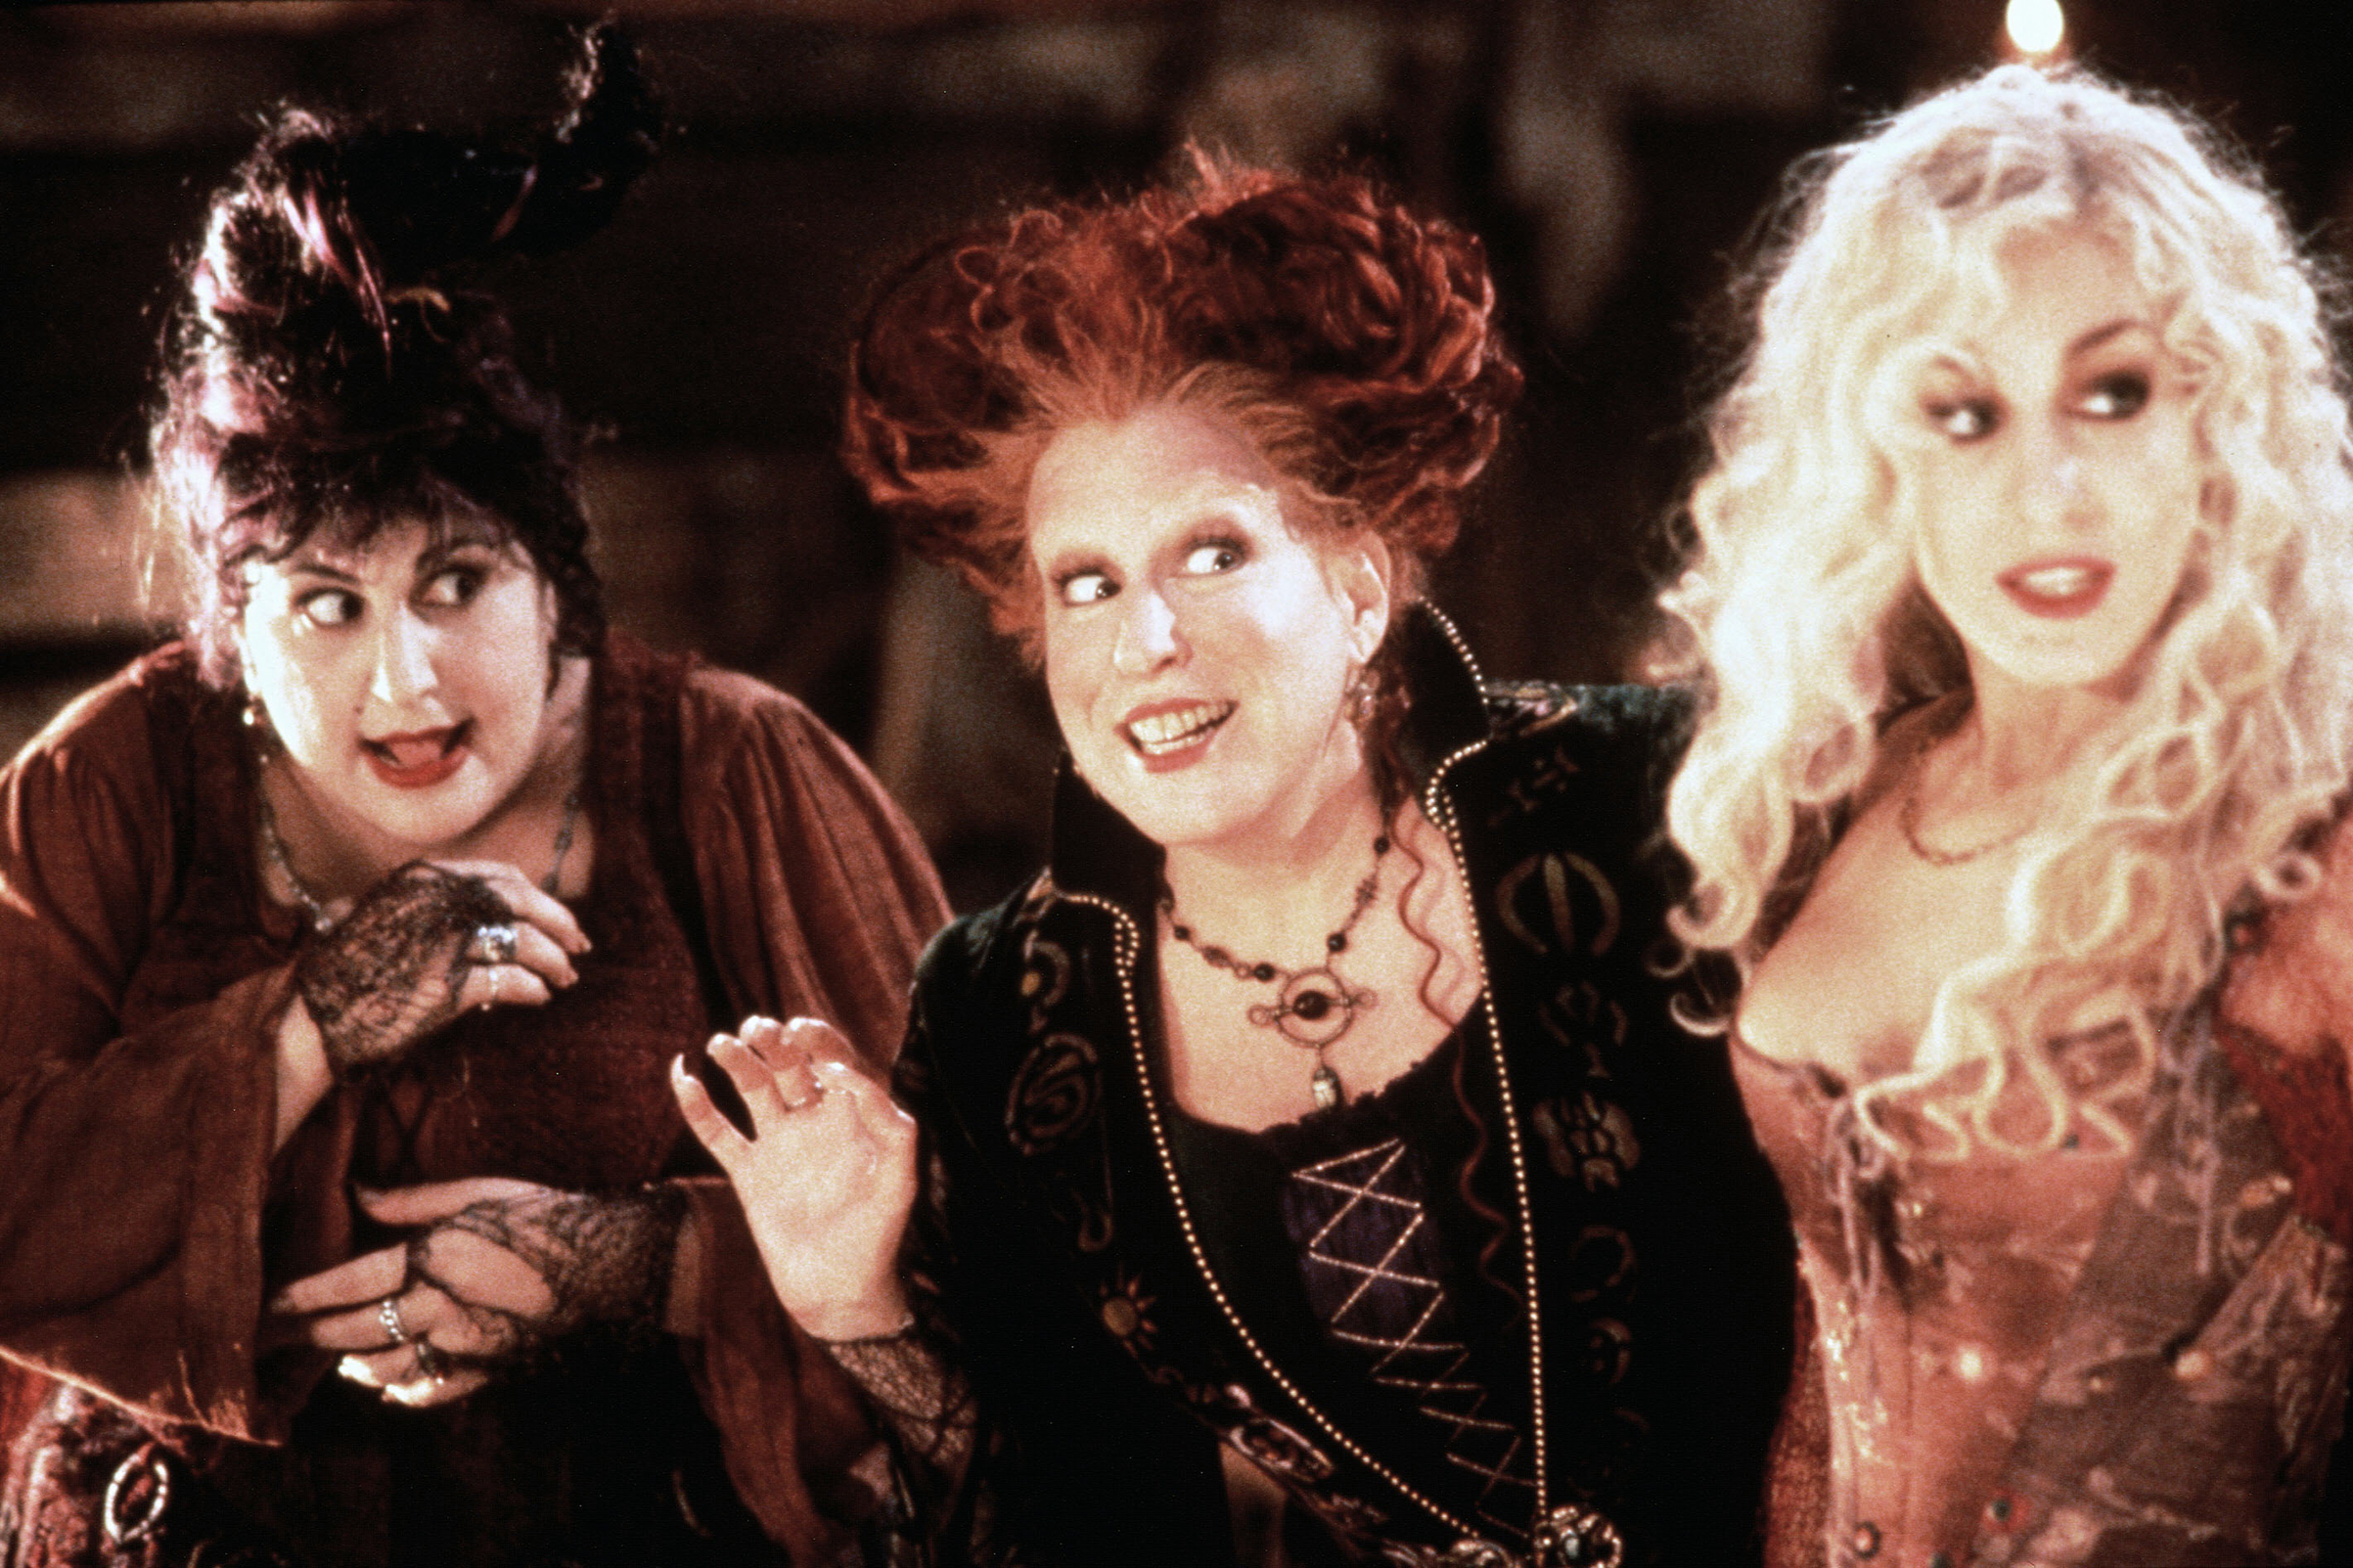 Kathy Najimy, Bette Midler, and Sarah Jessica Parker in Hocus Pocus, 1993.